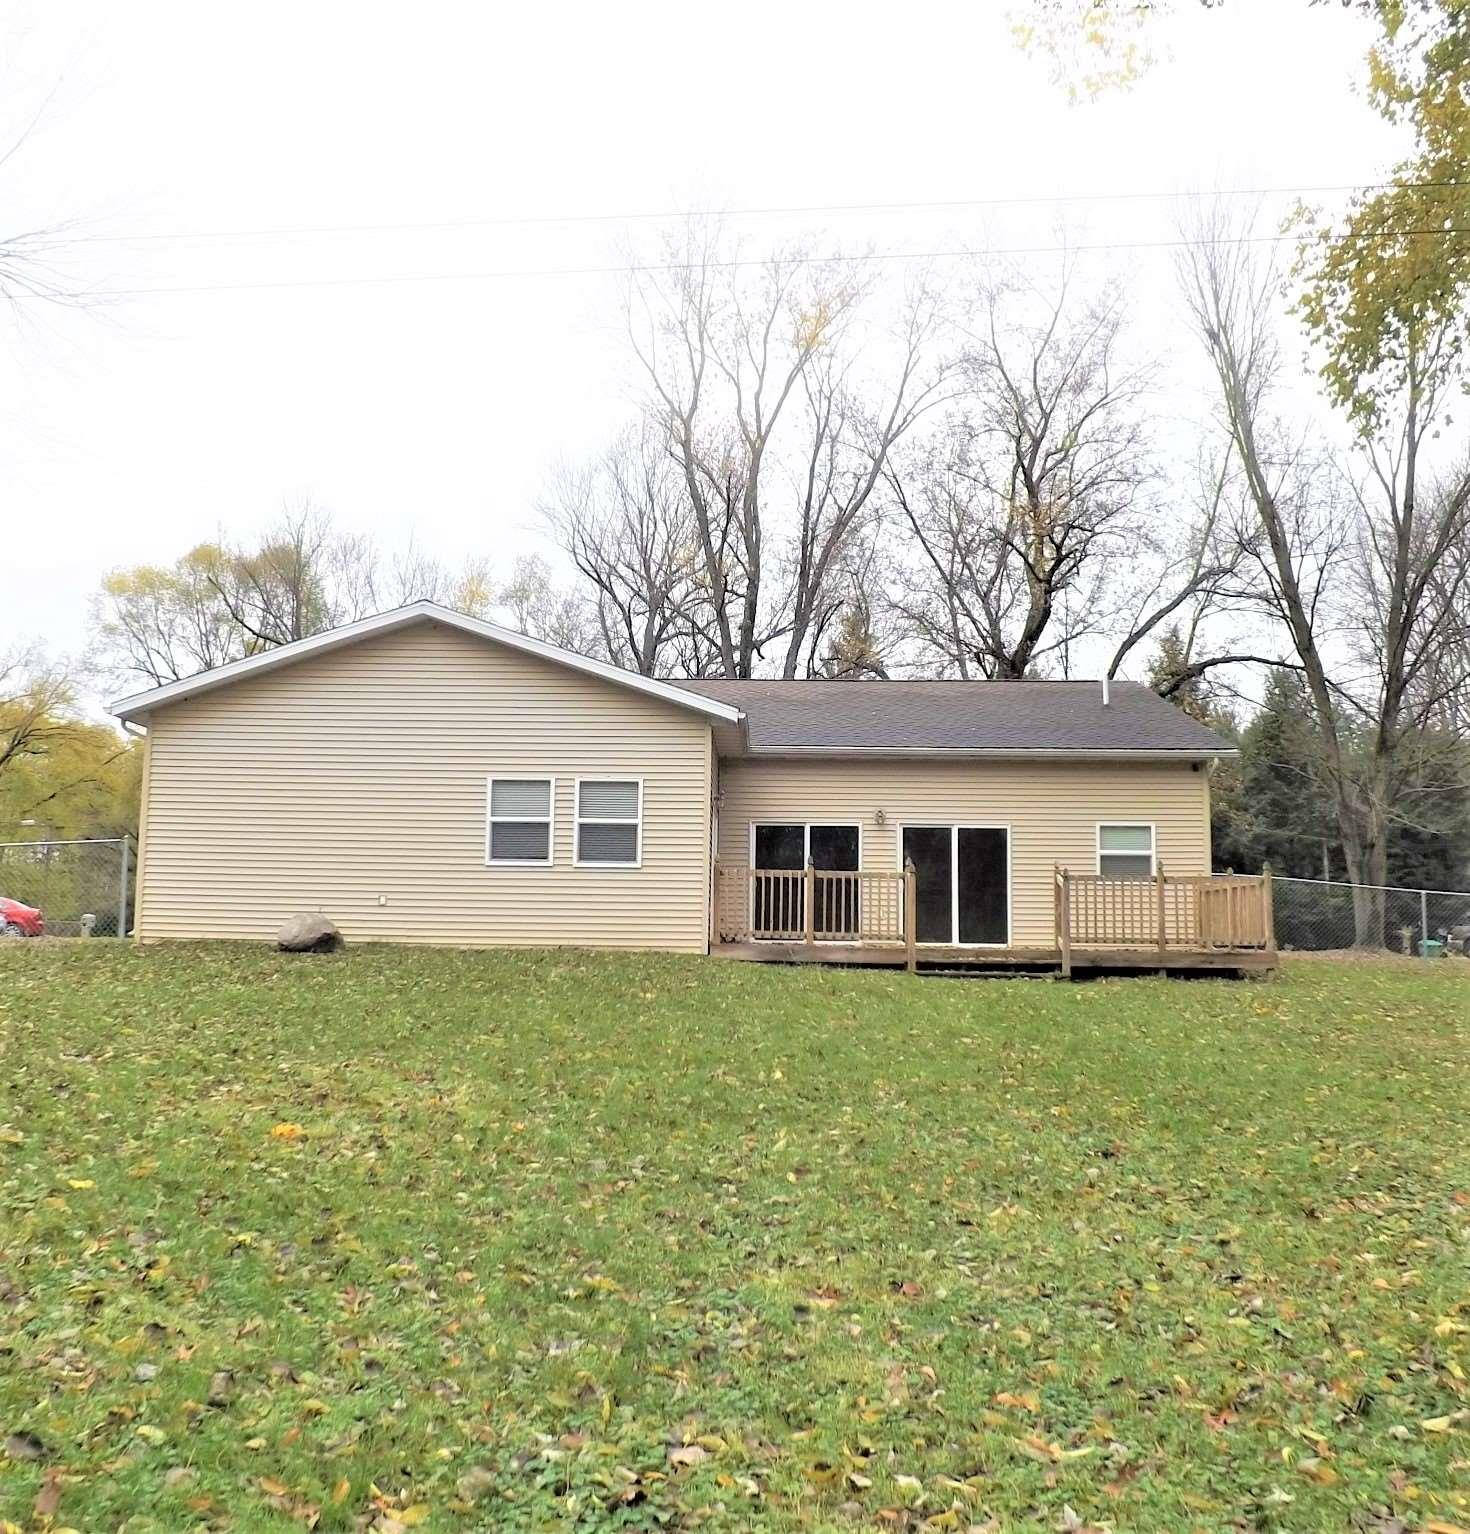 20340 Miller South Bend, IN 46614